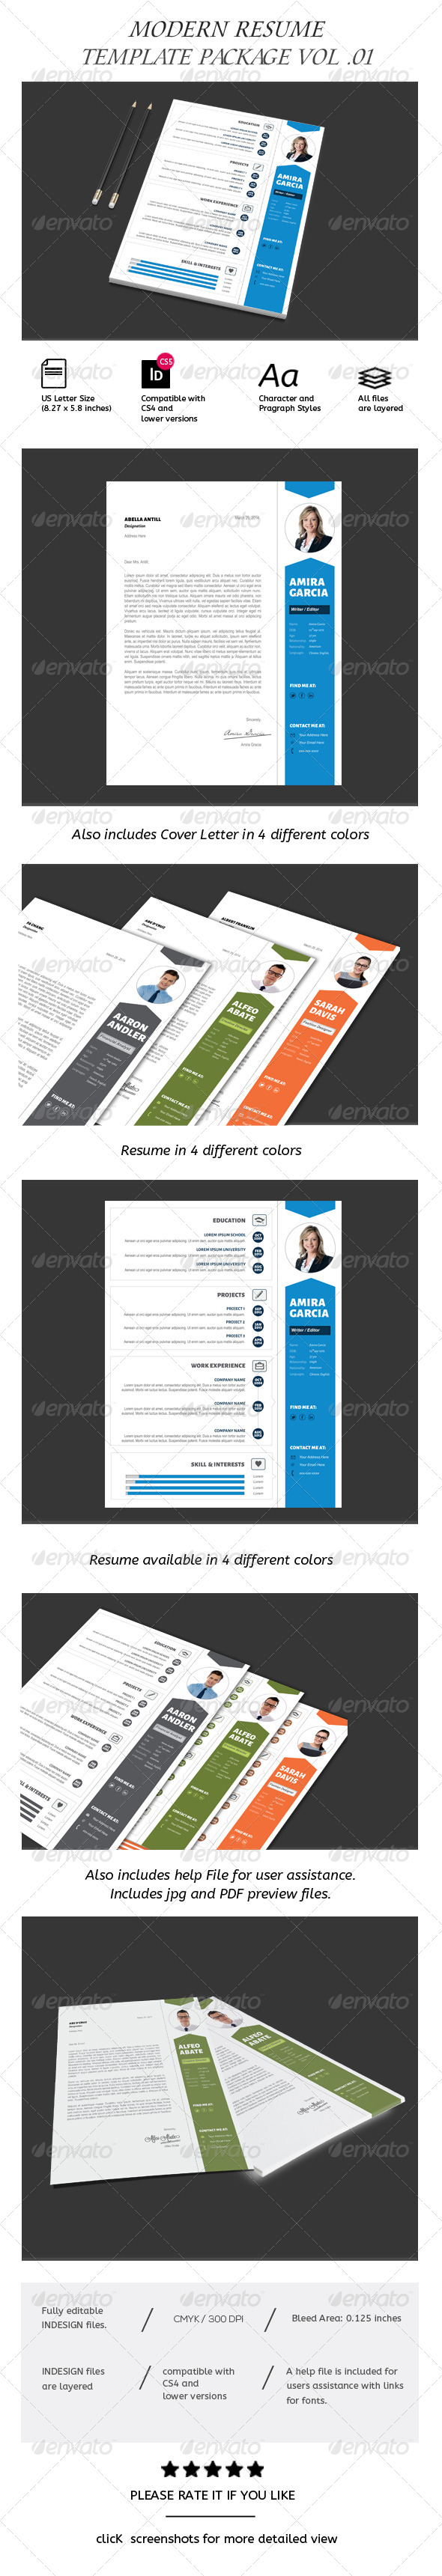 Clean Resume & Coverletter/CV Template